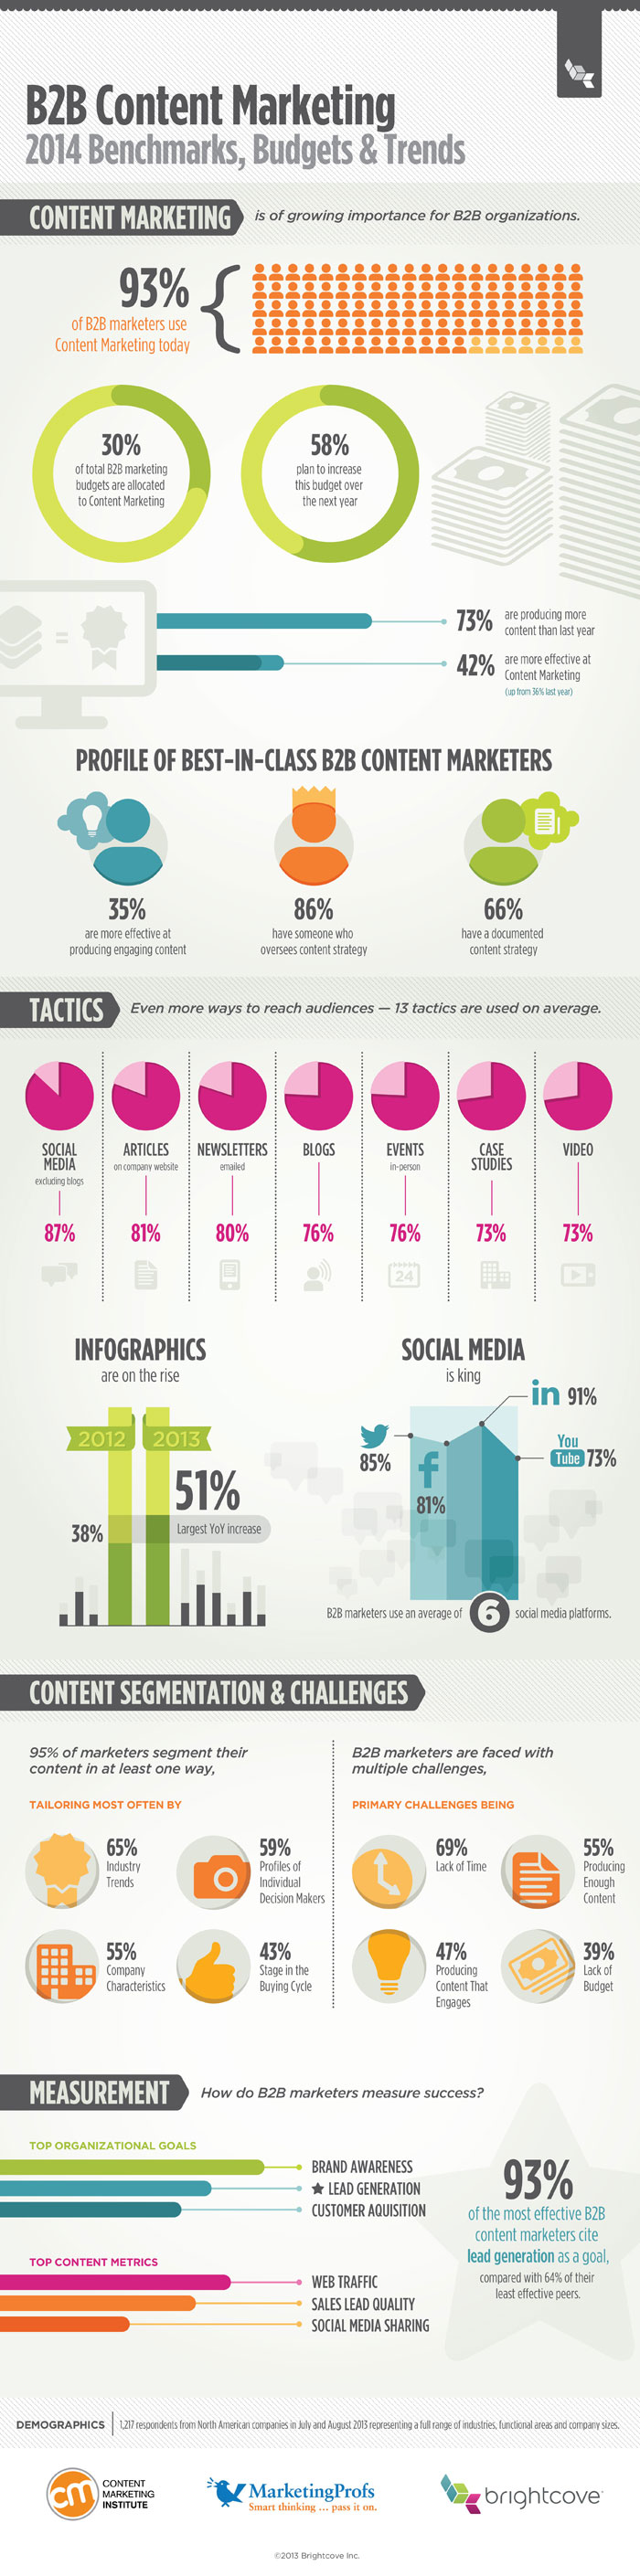 B2B Content Marketing Trends in 2014